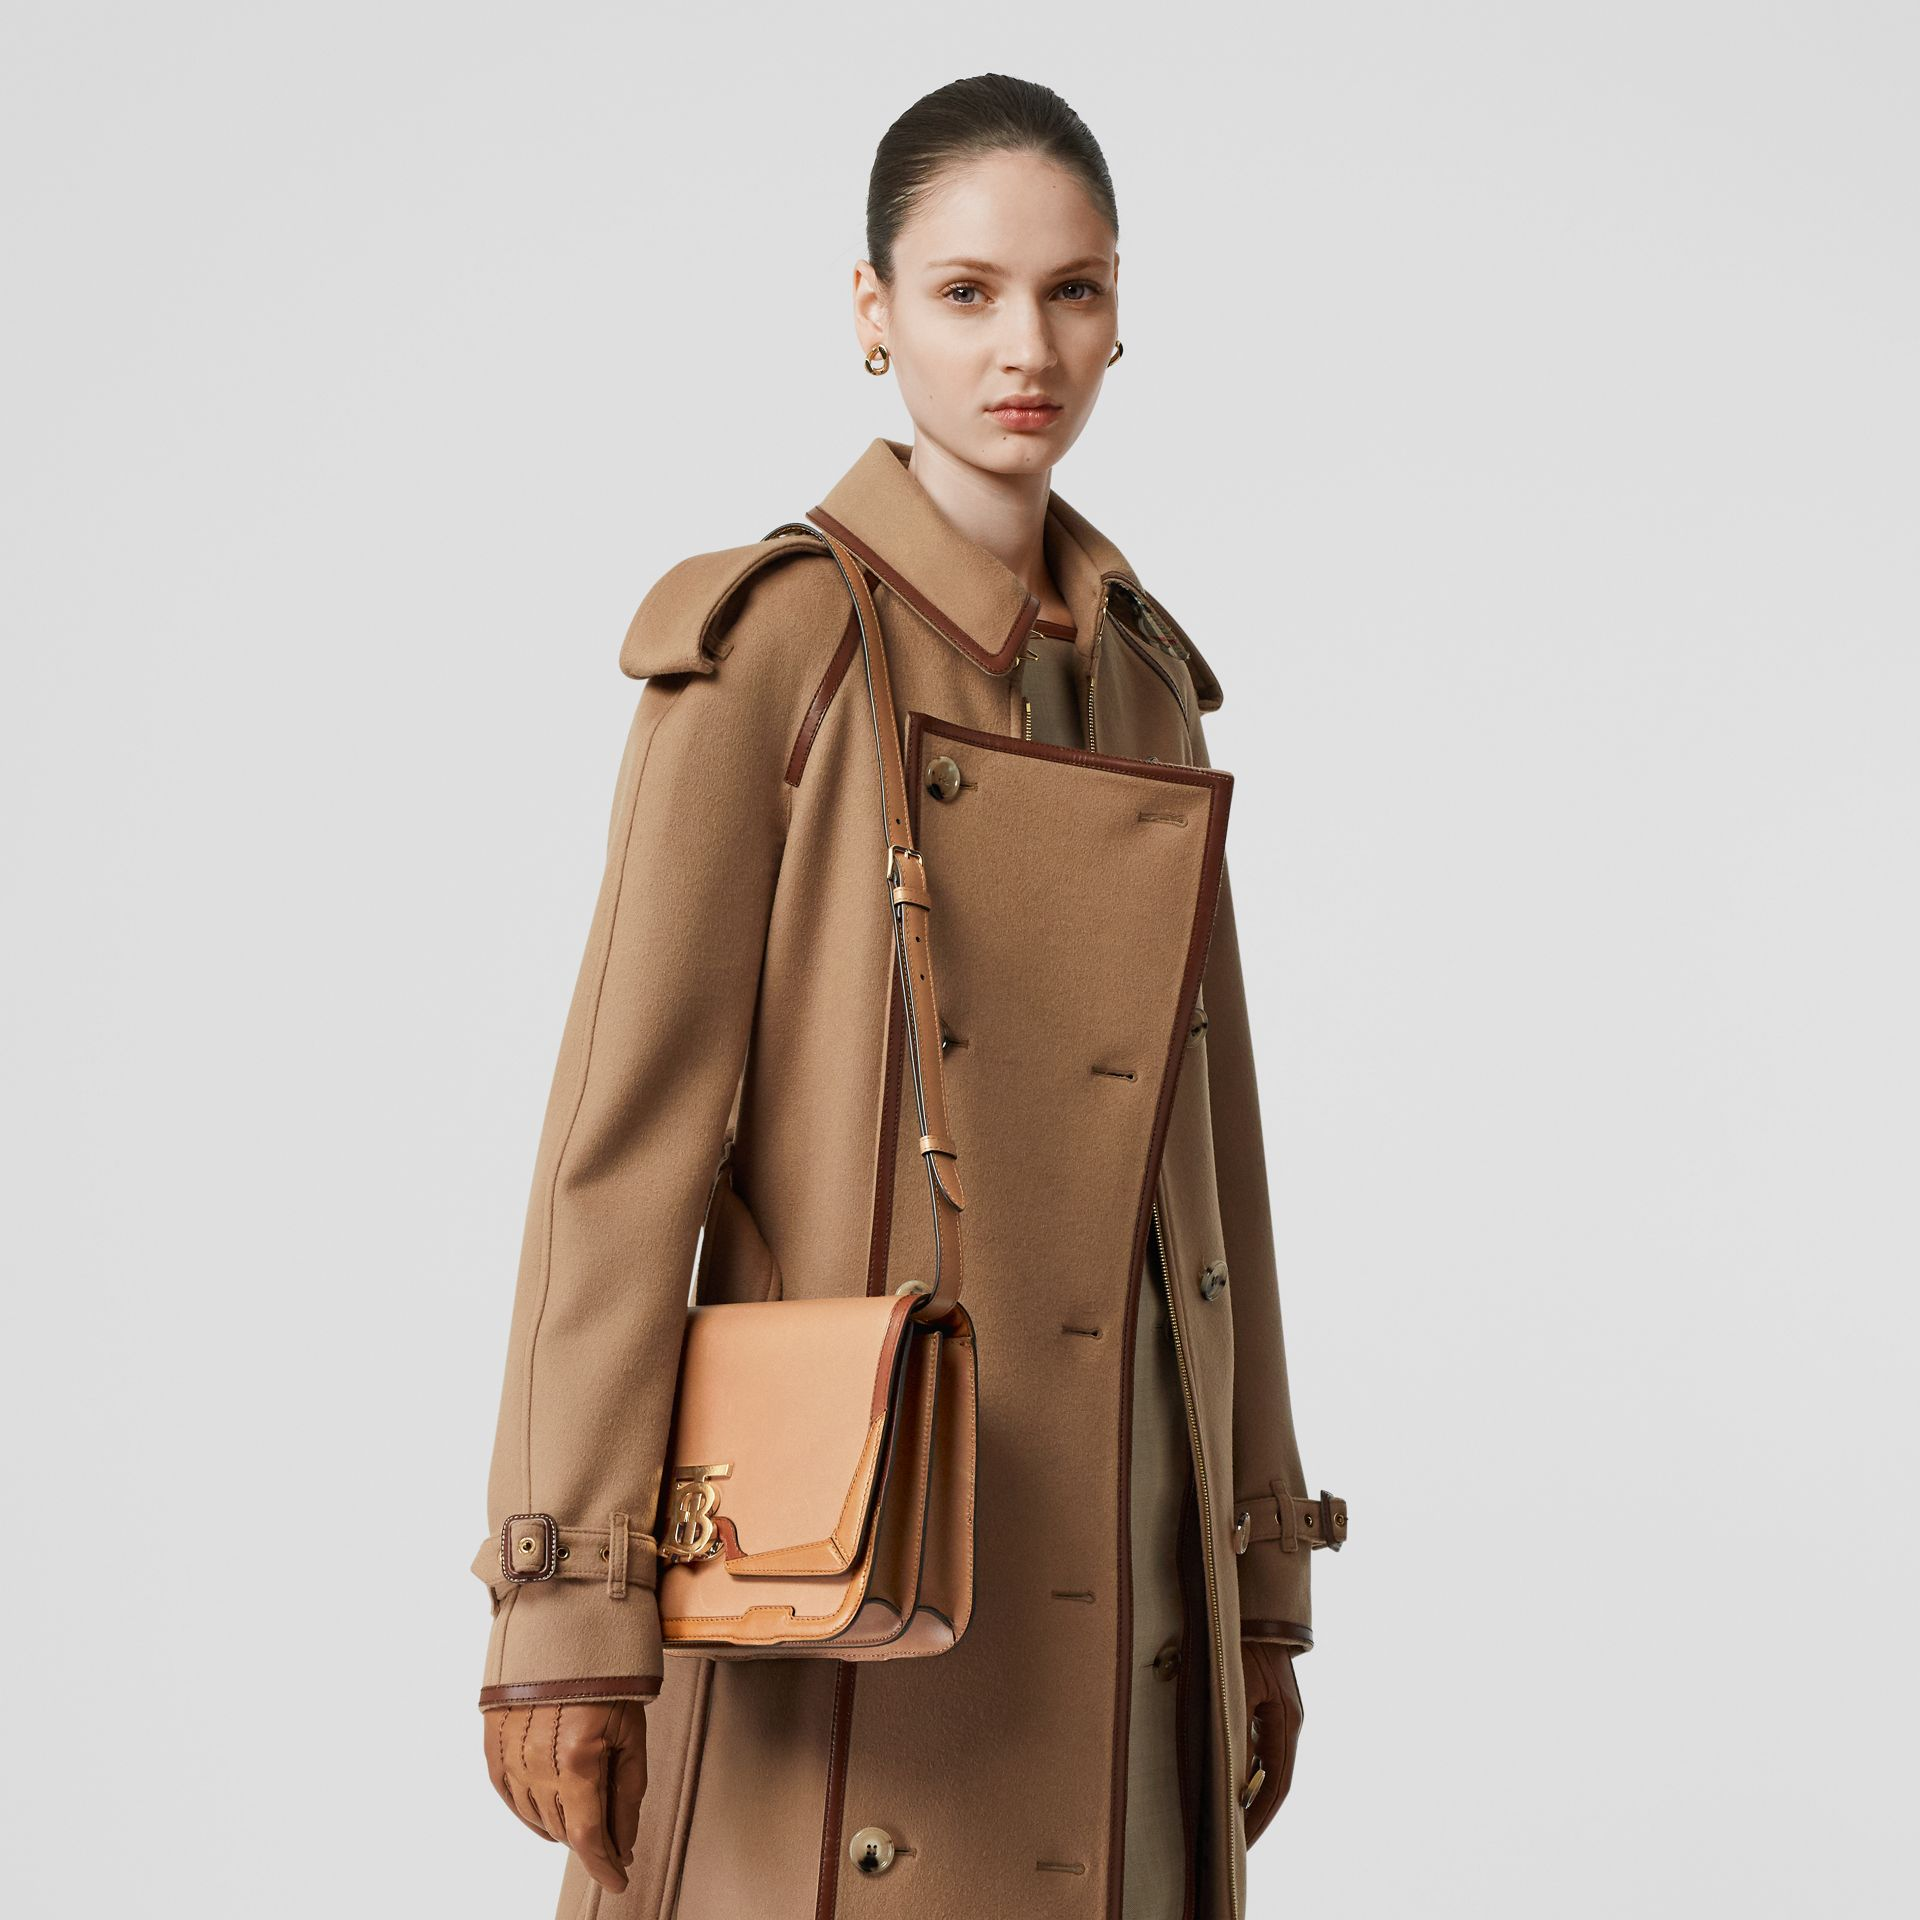 Medium Appliqué Leather TB Bag in Warm Camel - Women | Burberry - gallery image 2